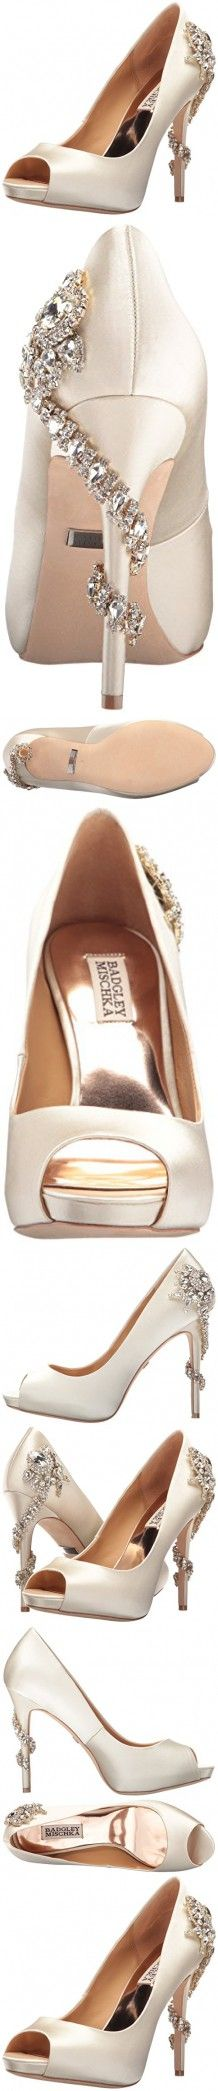 Badgley Mischka Women's Royal Dress Pump, Ivory, 7.5 M US